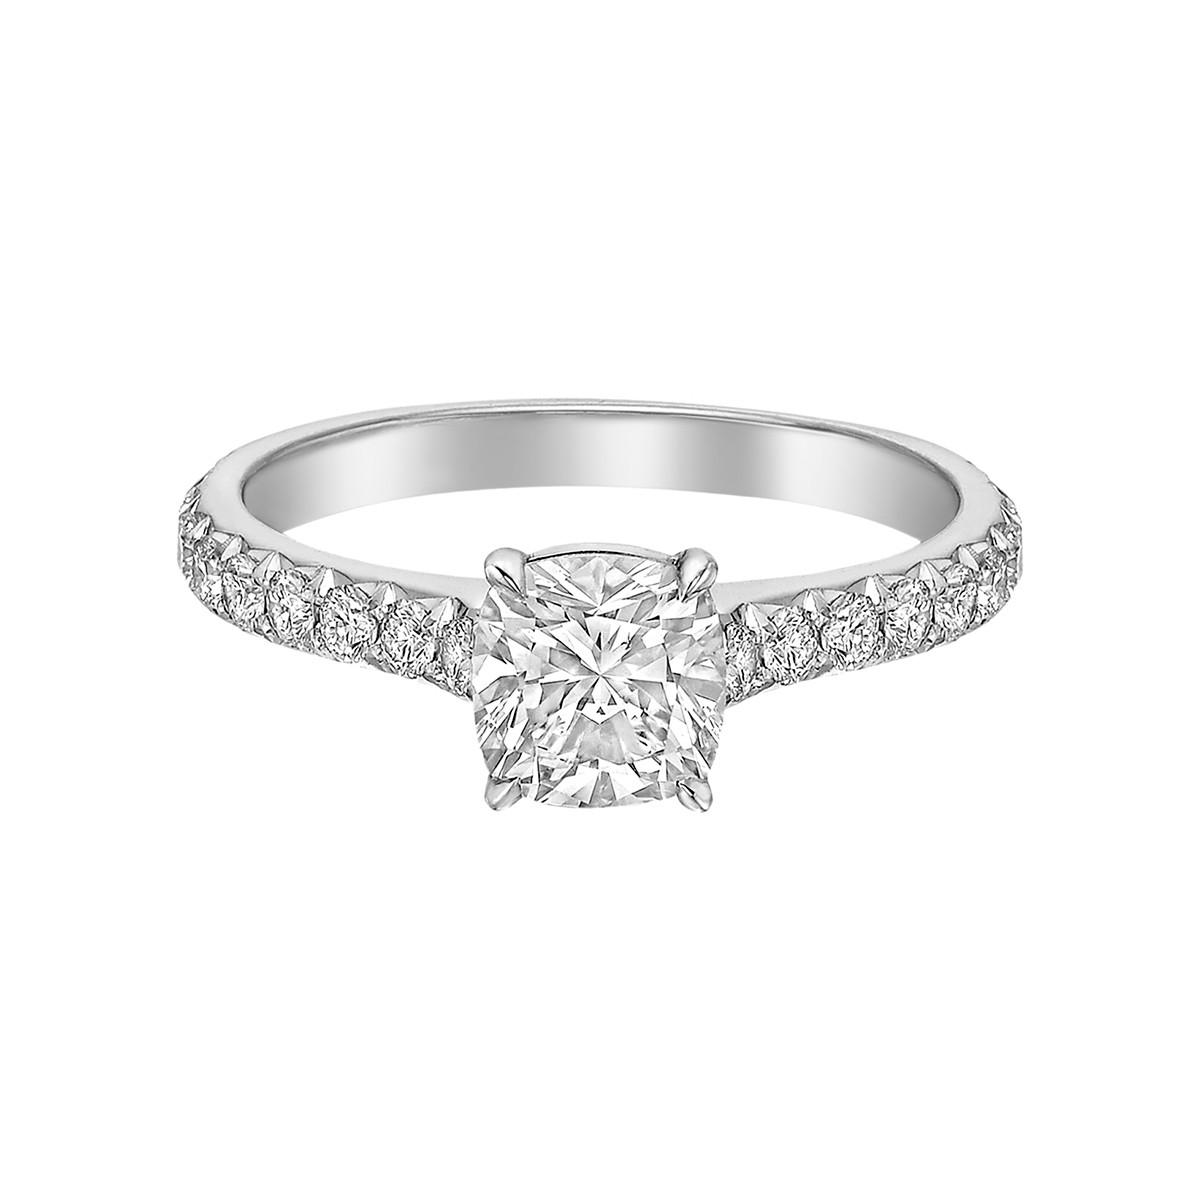 0.90ct Colorless Cushion-Cut Diamond Ring